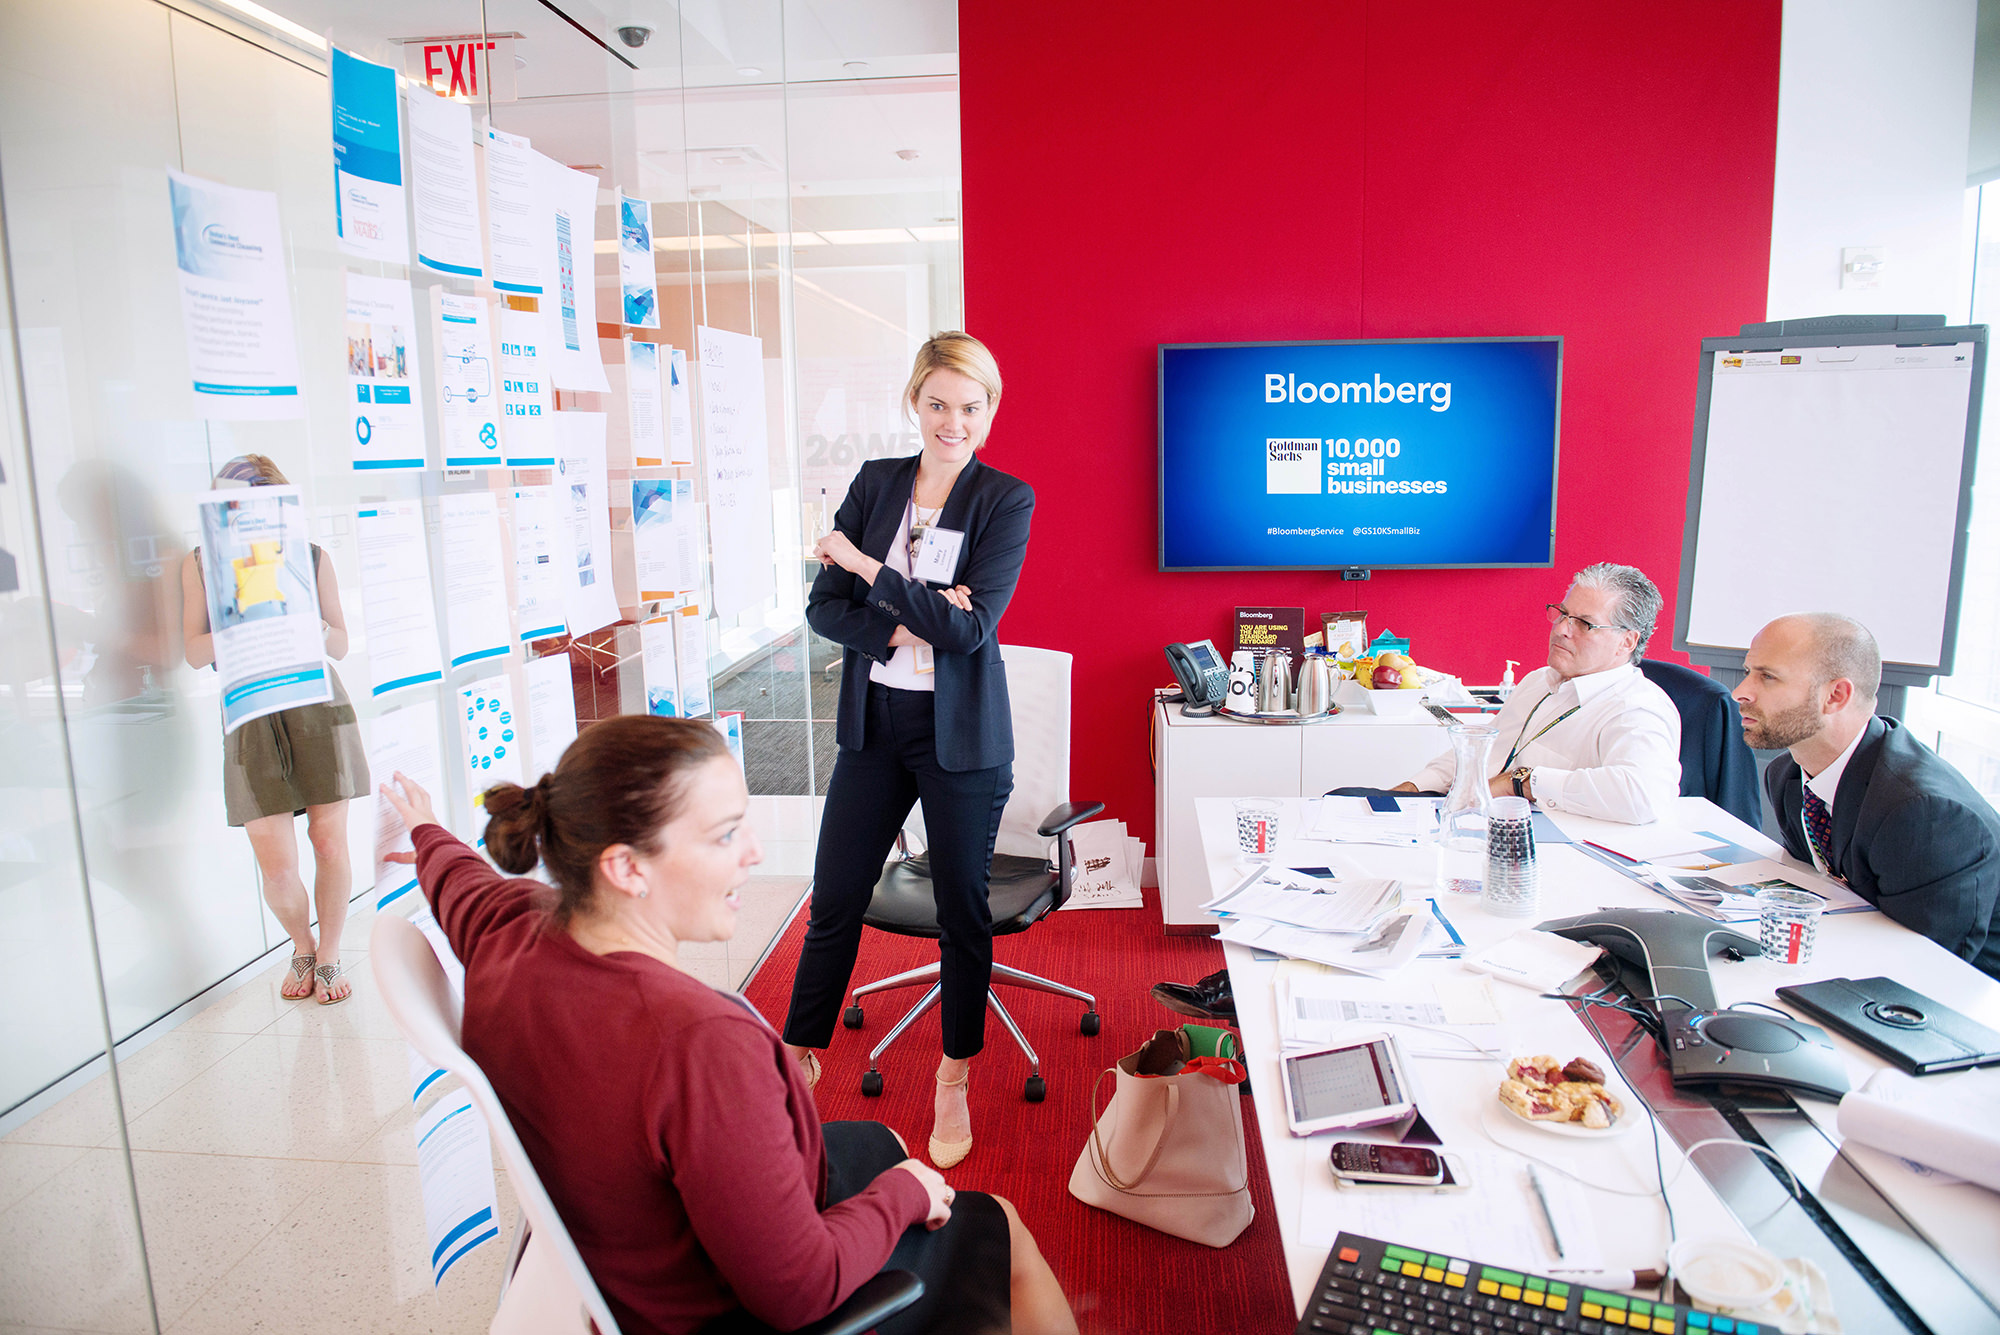 Expansion of Bloomberg and Goldman Sachs' 10,000 Small Businesses Coaching Session Program